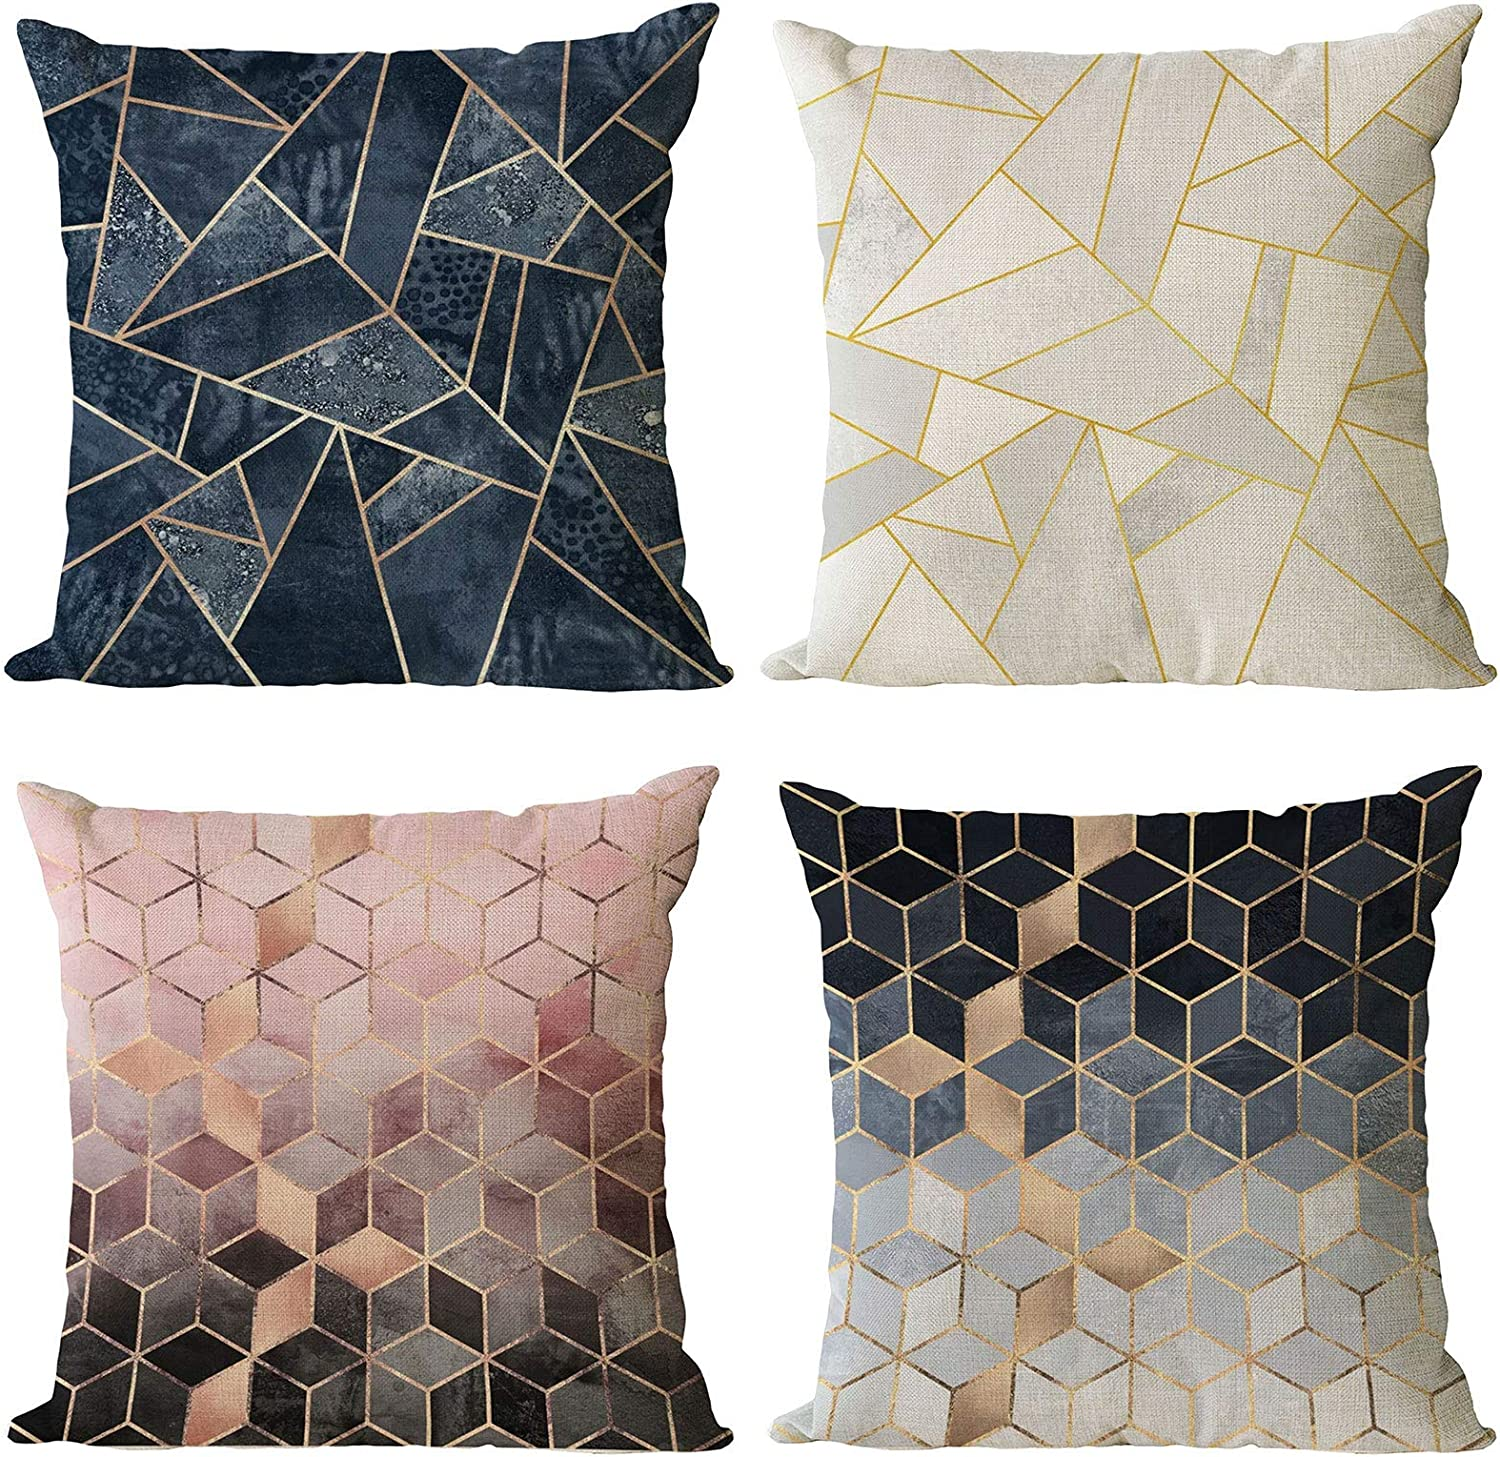 Neatee Living Set of 4 Geometric Decorative Throw Pillow Covers Cotton Linen Square Pillow Cases 20x20 Inch Outdoor Sofa Couch Home Bed Decor Cushion Covers (20 by 20)